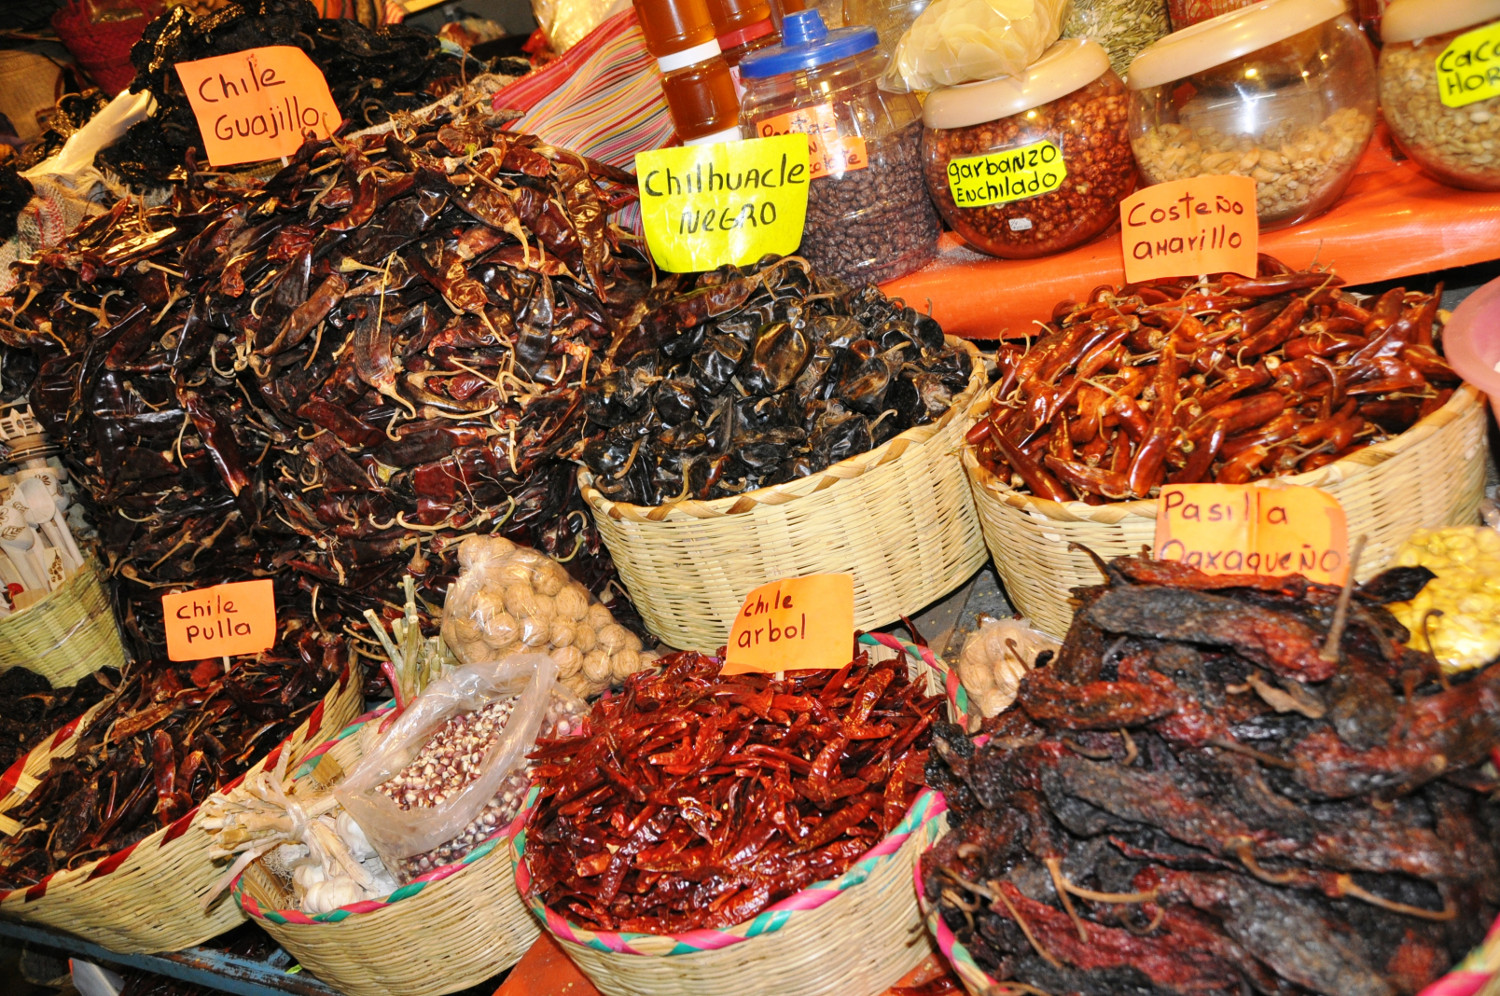 Am Markt von Oaxaca: Chili in allen Variationen | Oaxaca market: every type of chili you can imagine